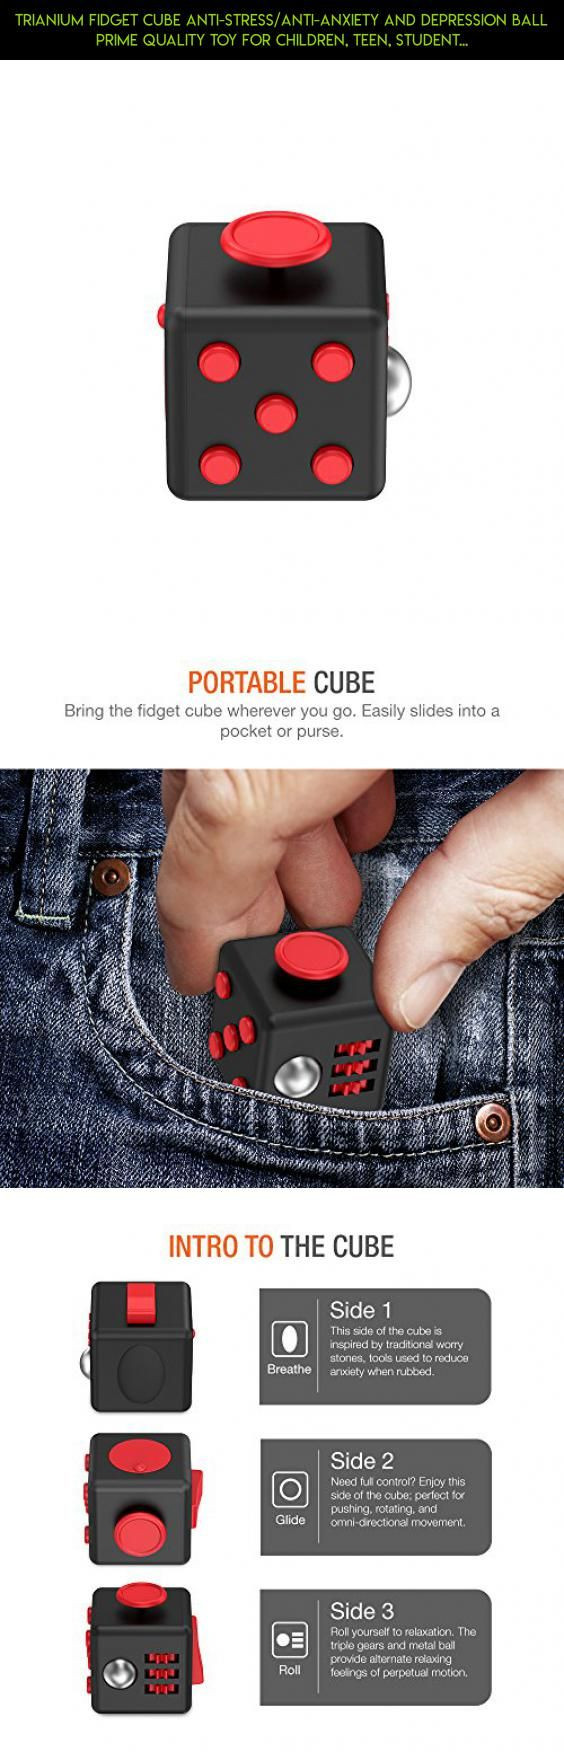 Trianium Fidget Cube Anti-Stress/Anti-anxiety and Depression Ball Prime Quality Toy for Children, Teen, Student, Adult [Easy Carrying] Finger Dice Stress Reliever for Work, School, Class (TM000121) #tech #gadgets #cube #fpv #shopping #camera #fidget #products #kit #plans #parts #racing #drone #technology